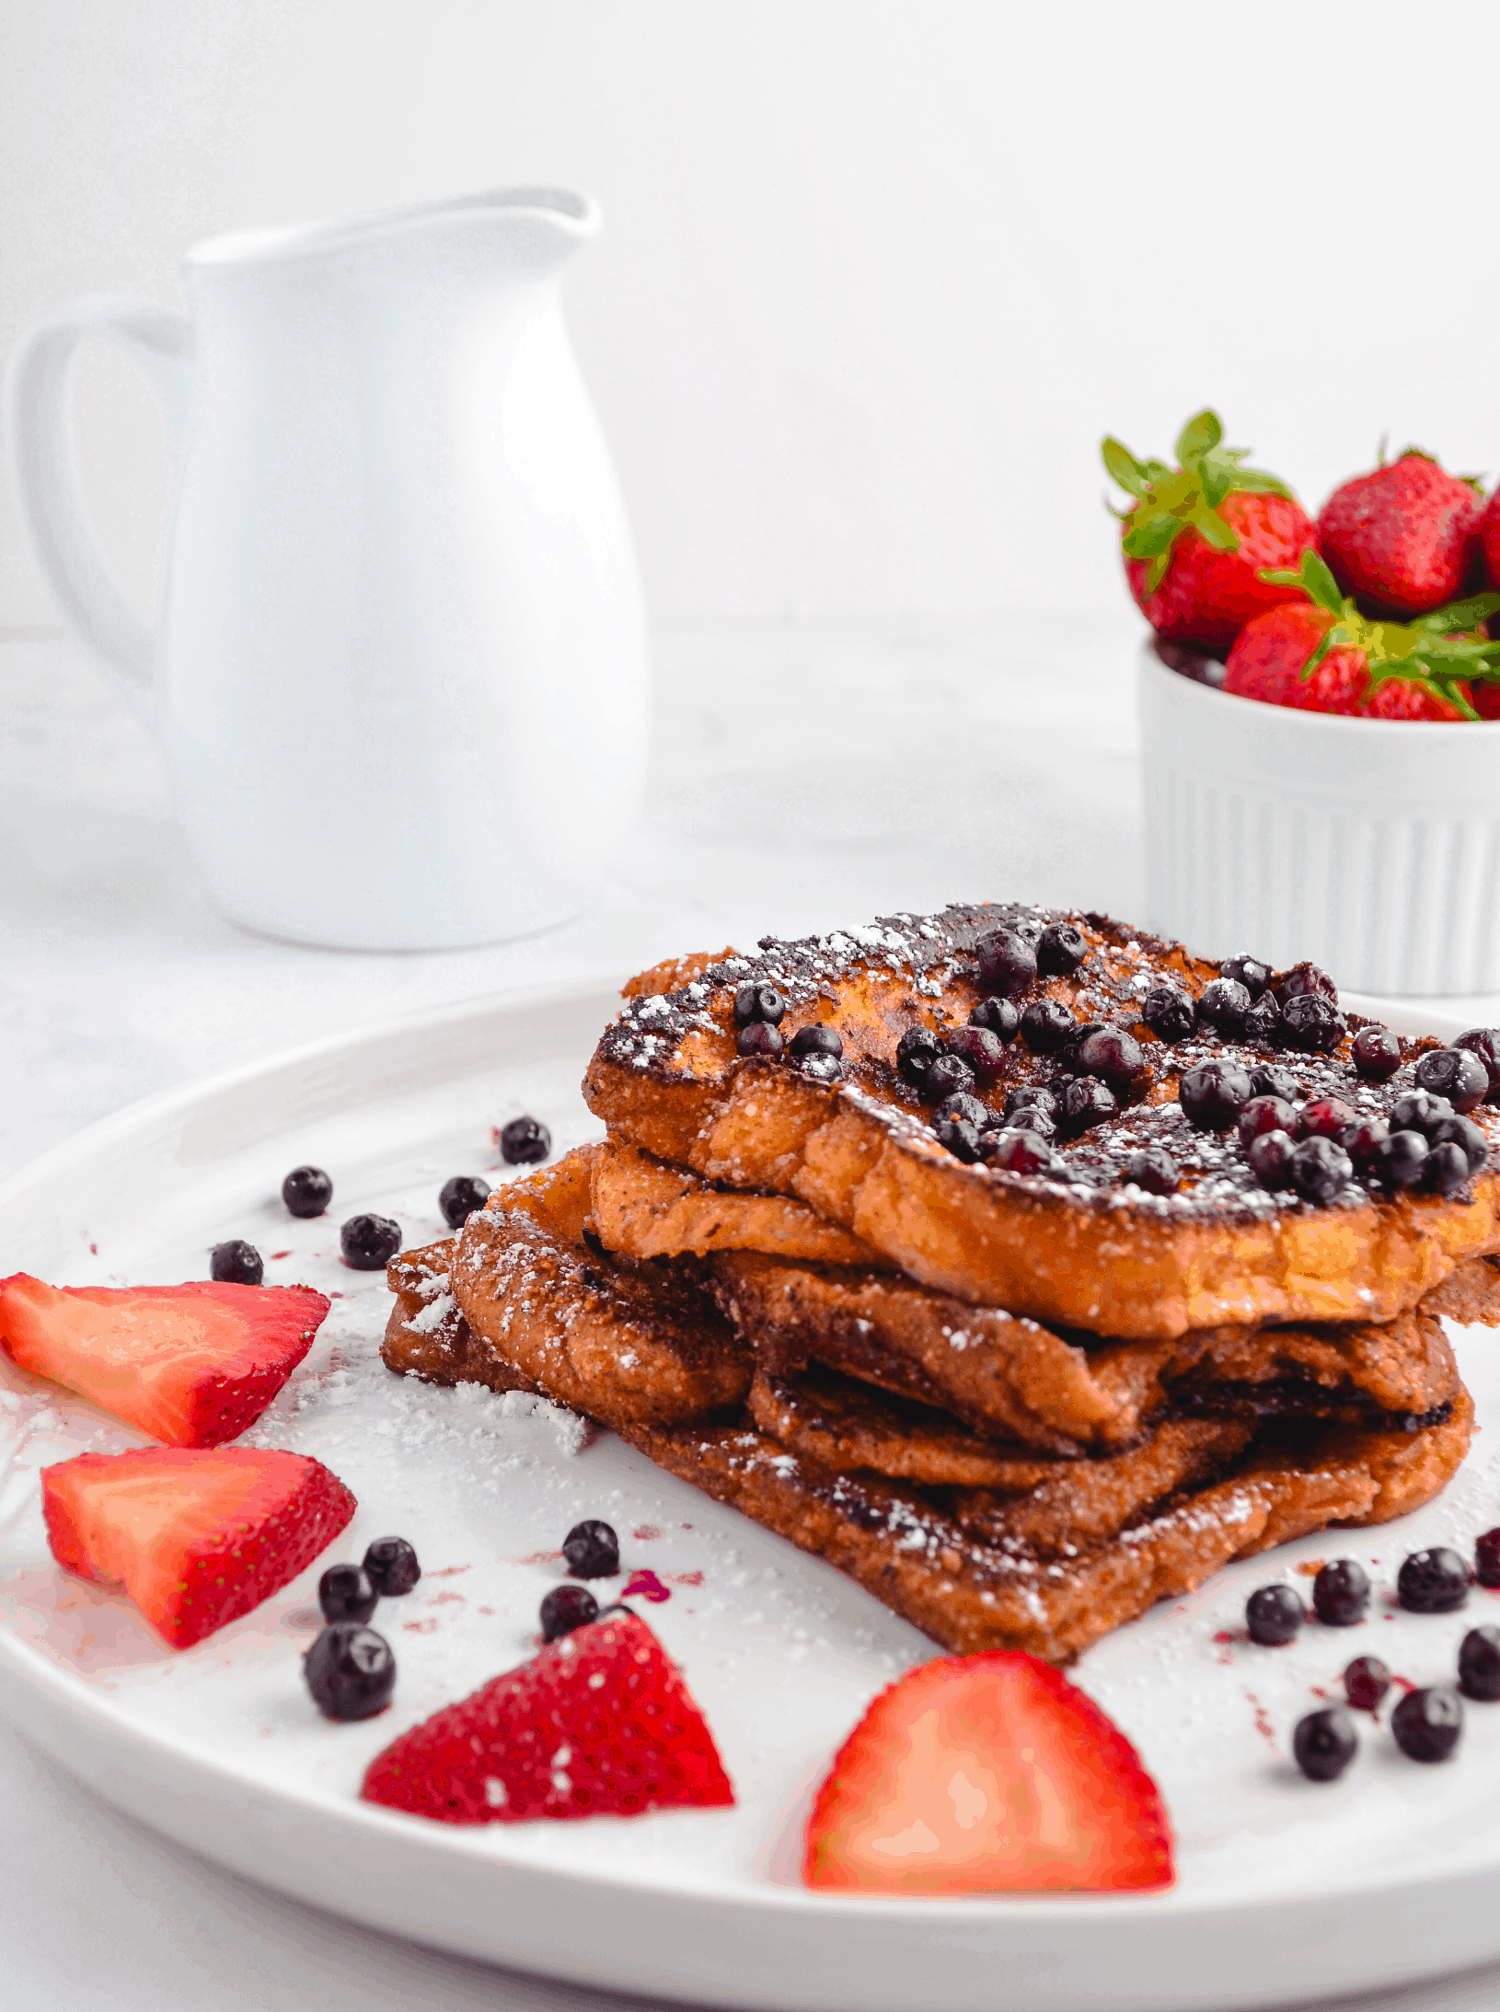 Vegan coconut milk french toast